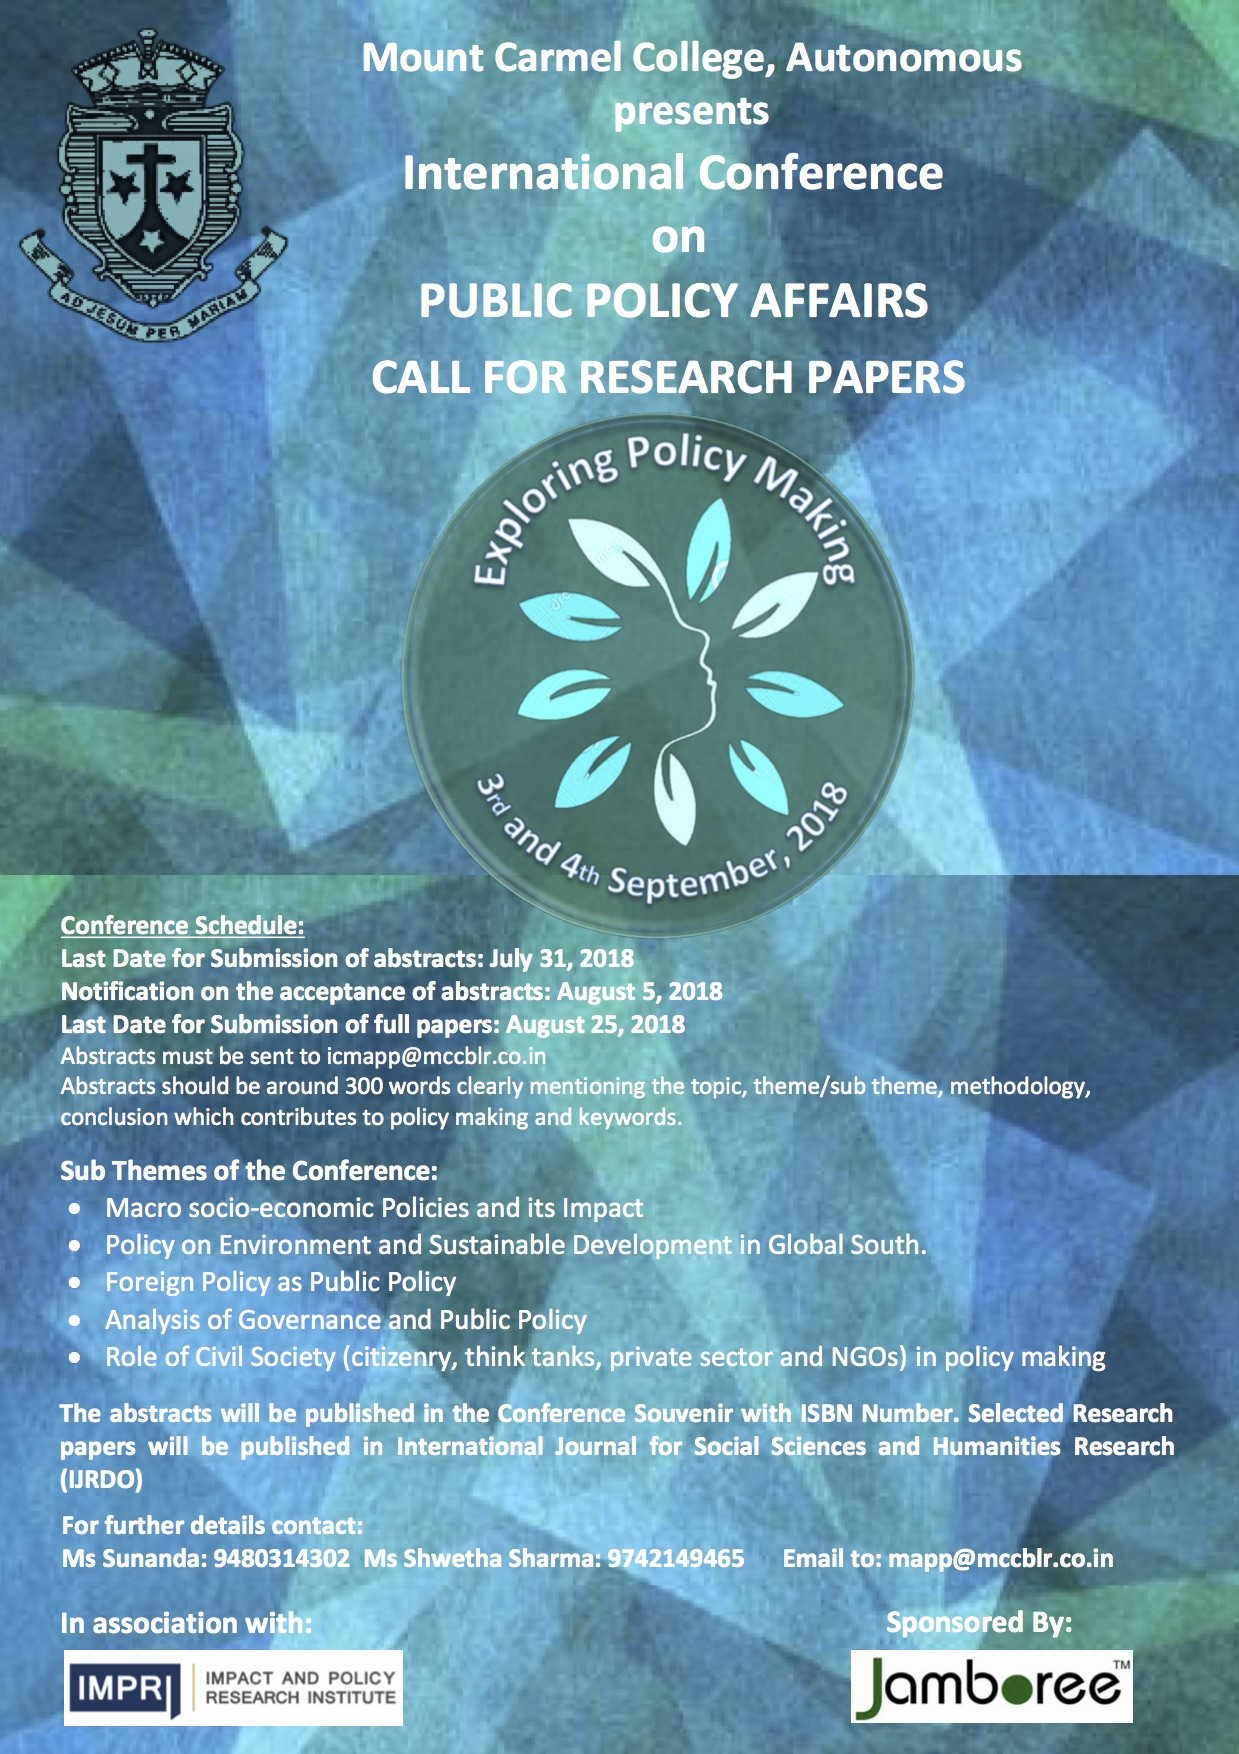 Conference Public Policy Affairs Bangalore